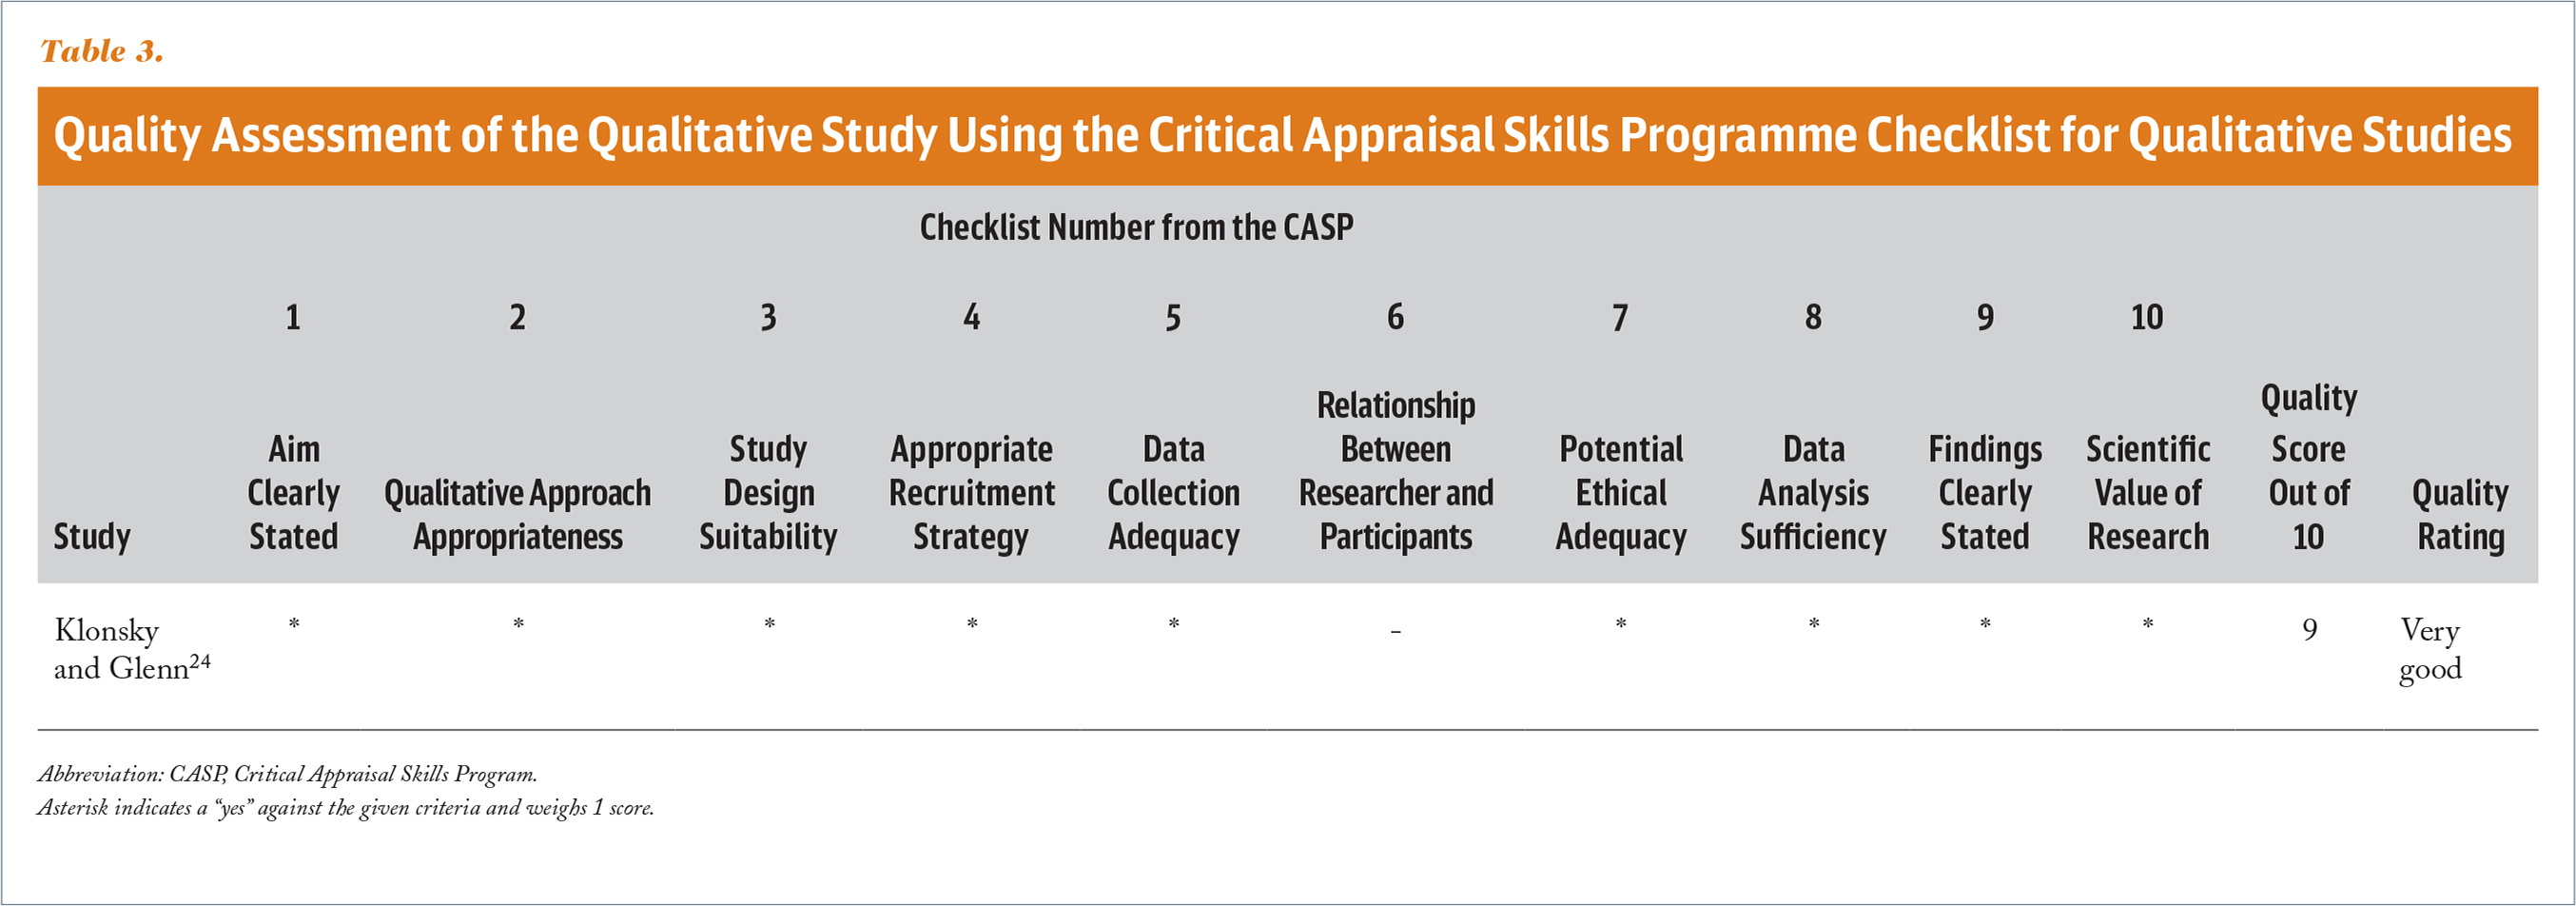 Quality Assessment of the Qualitative Study Using the Critical Appraisal Skills Programme Checklist for Qualitative Studies